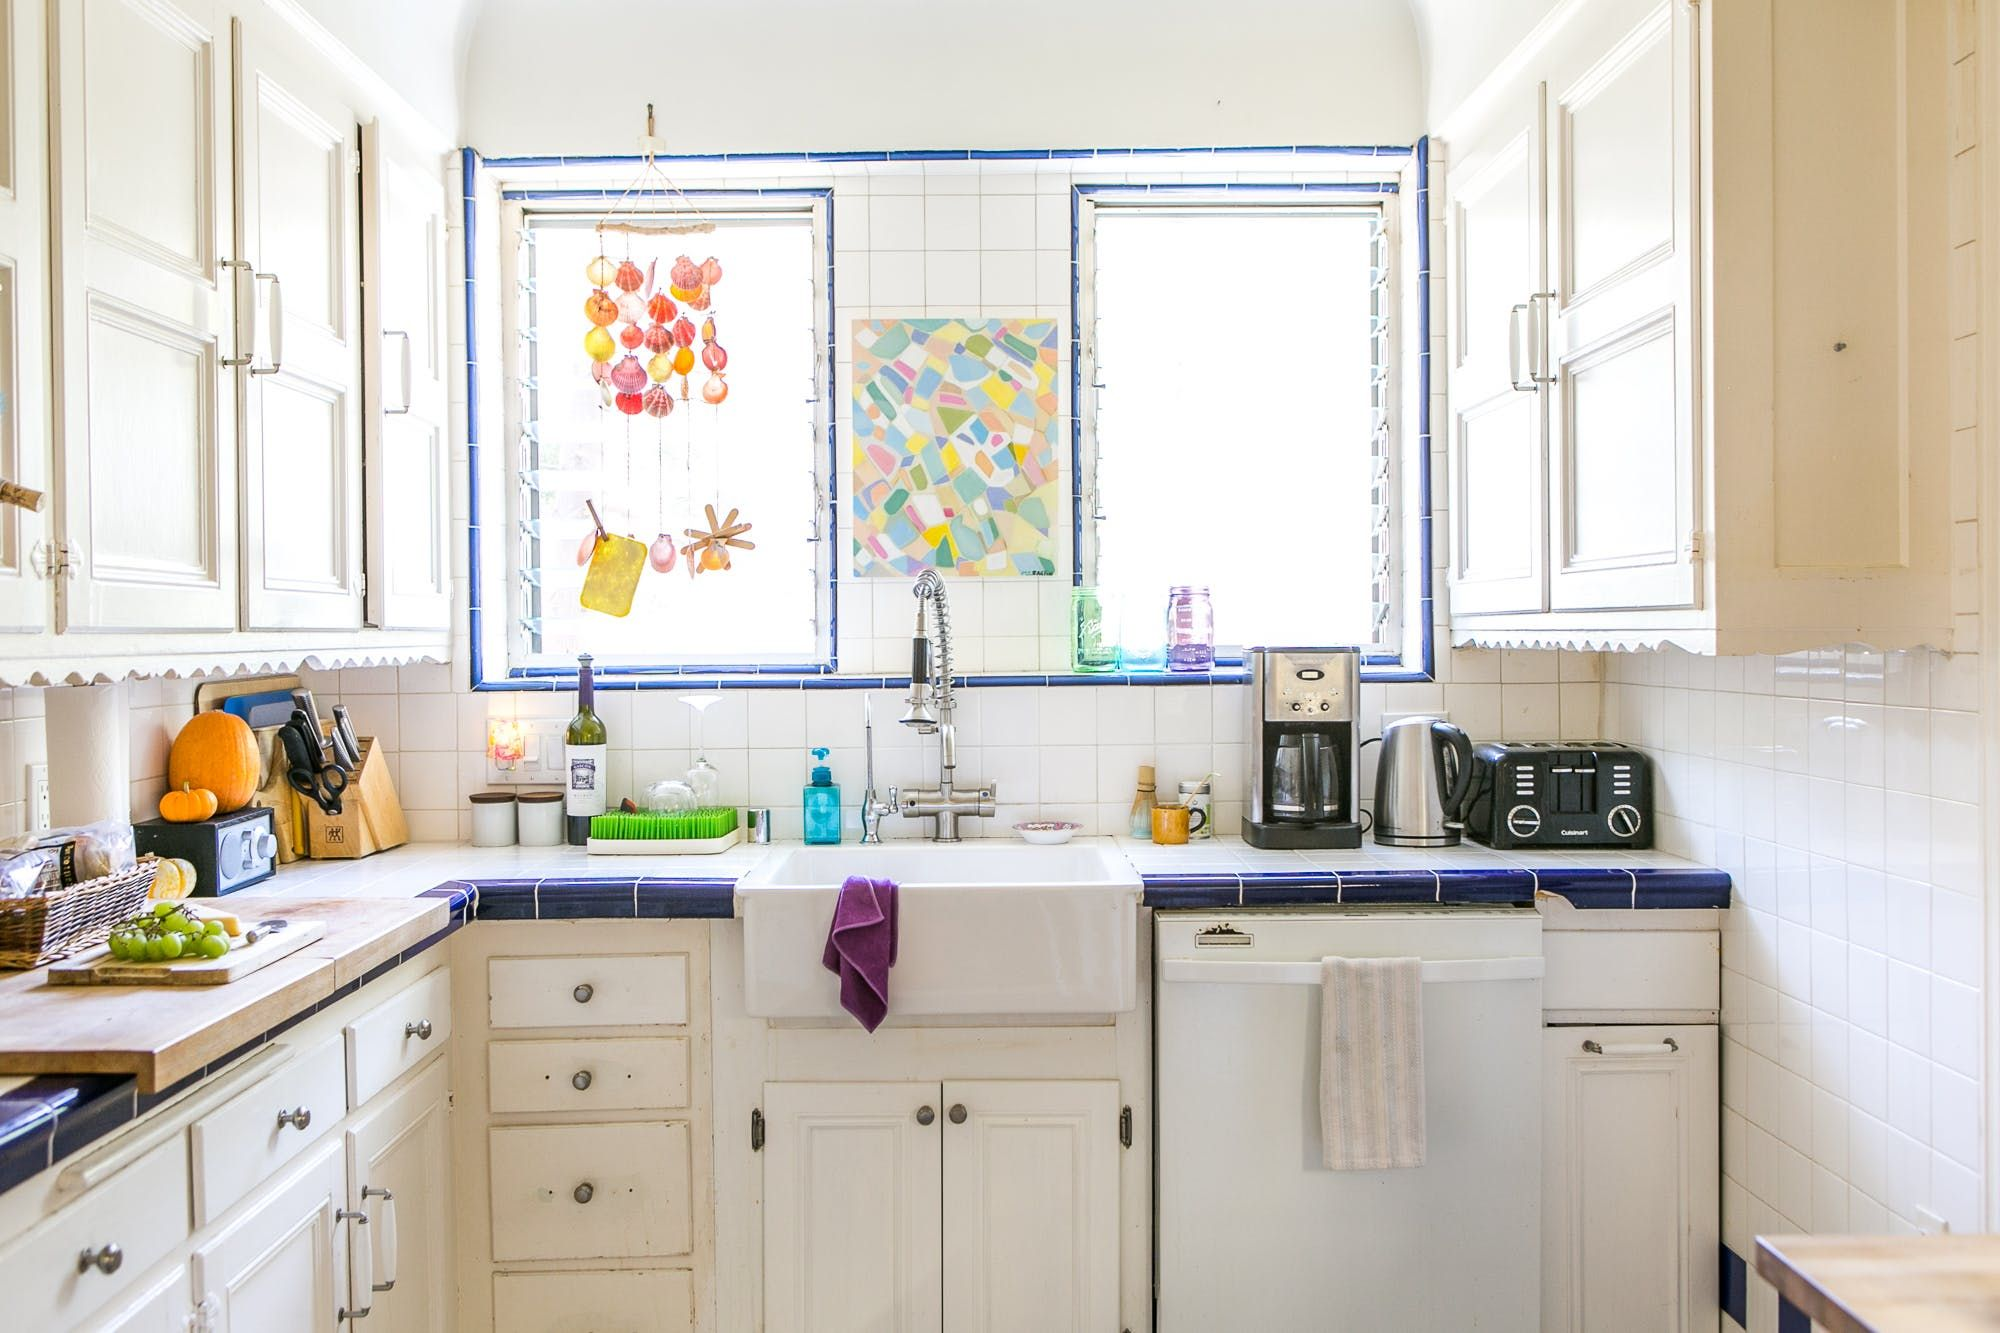 Sliding window over kitchen sink   little chores to get your kitchen ready for summer   house